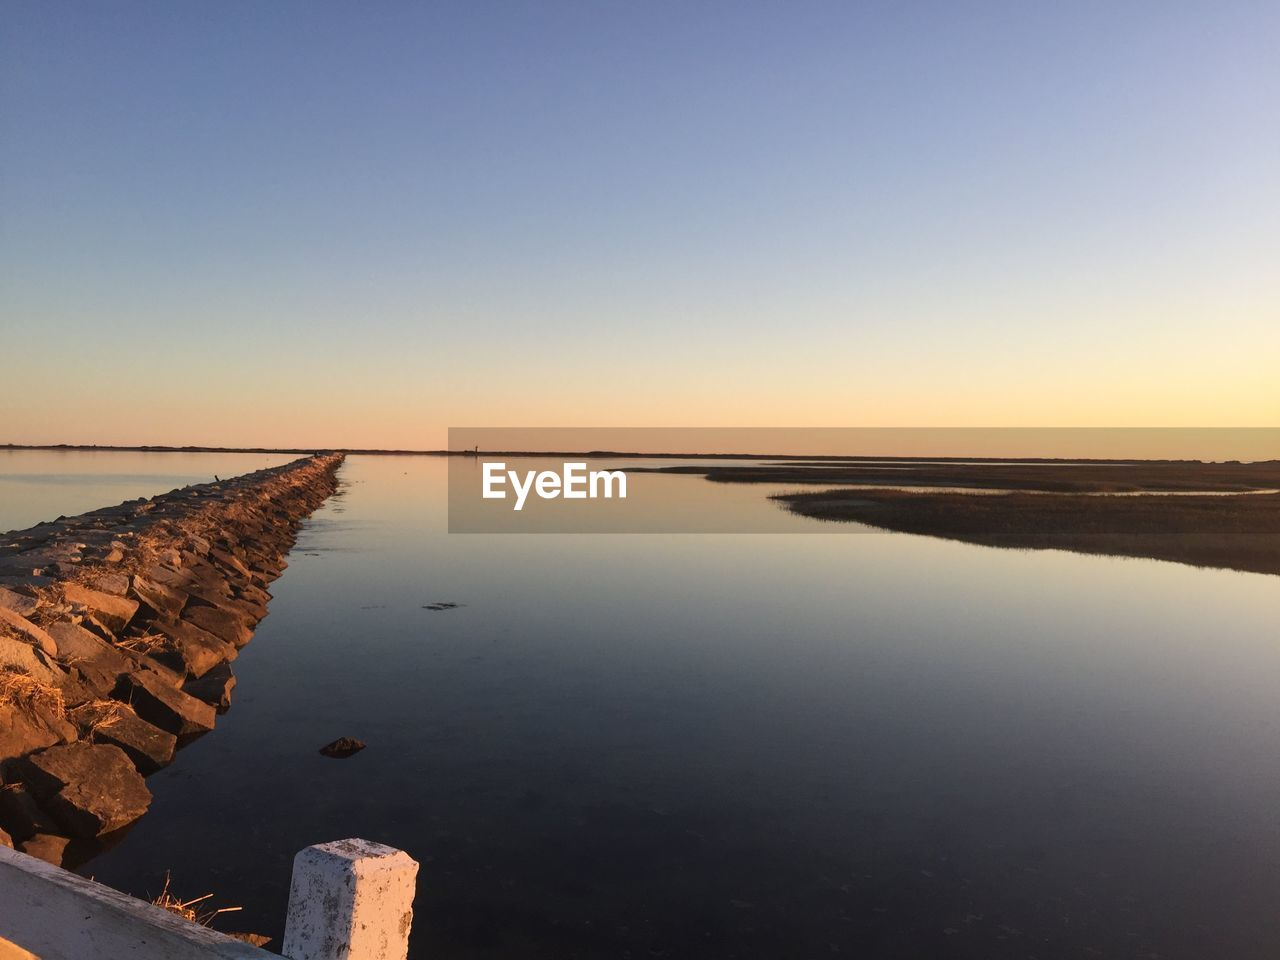 water, sky, scenics - nature, tranquility, copy space, reflection, tranquil scene, beauty in nature, sunset, clear sky, sea, nature, no people, non-urban scene, outdoors, idyllic, beach, standing water, groyne